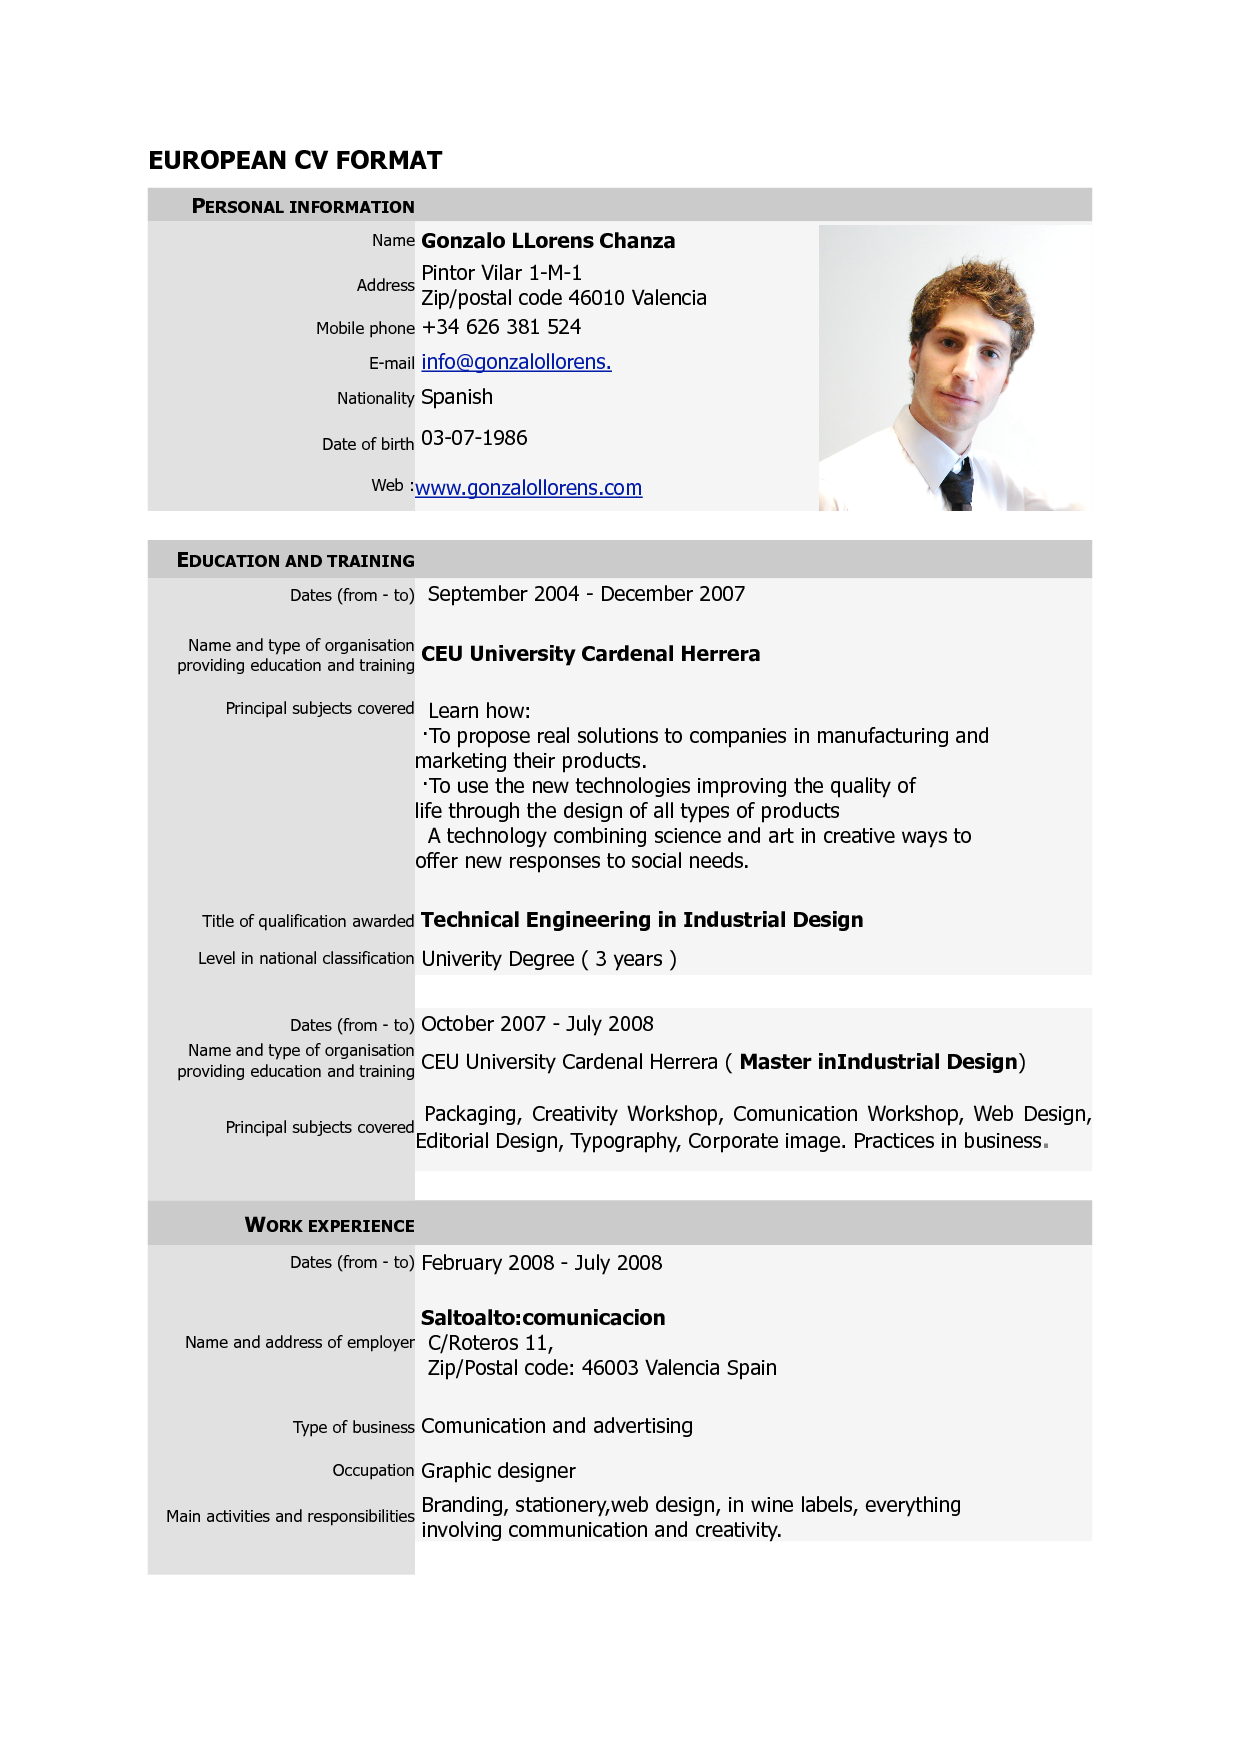 Resume Format Microsoft Word Unique Free Download Cv Europass Pdf Europass Home European Cv Format Pdf Review